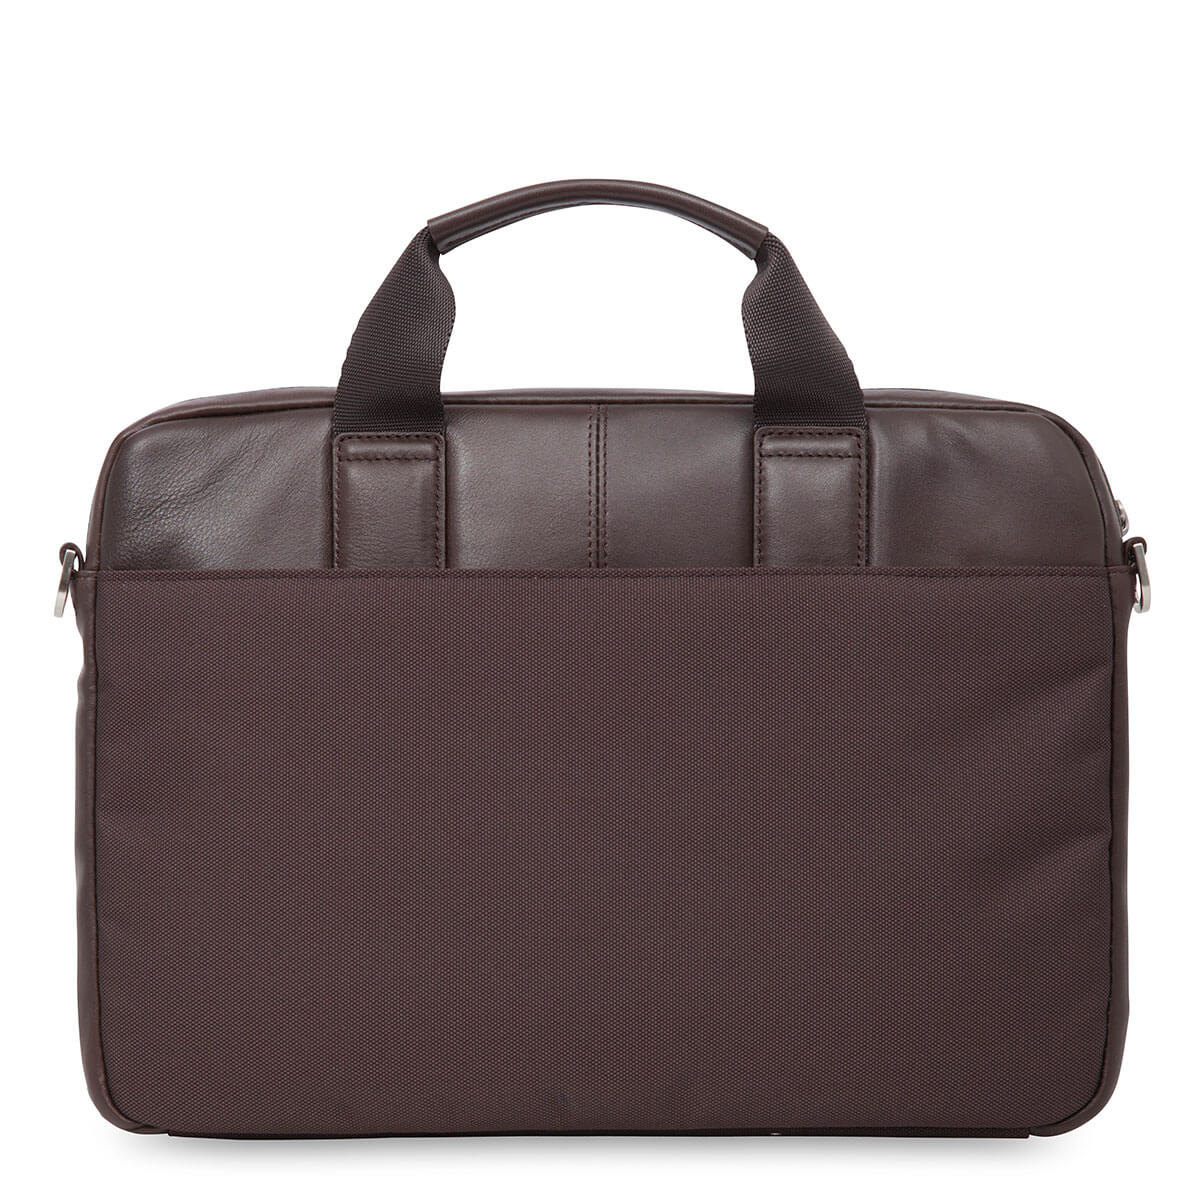 "Stanford Leather Laptop Briefcase - 13"" -  Brown 